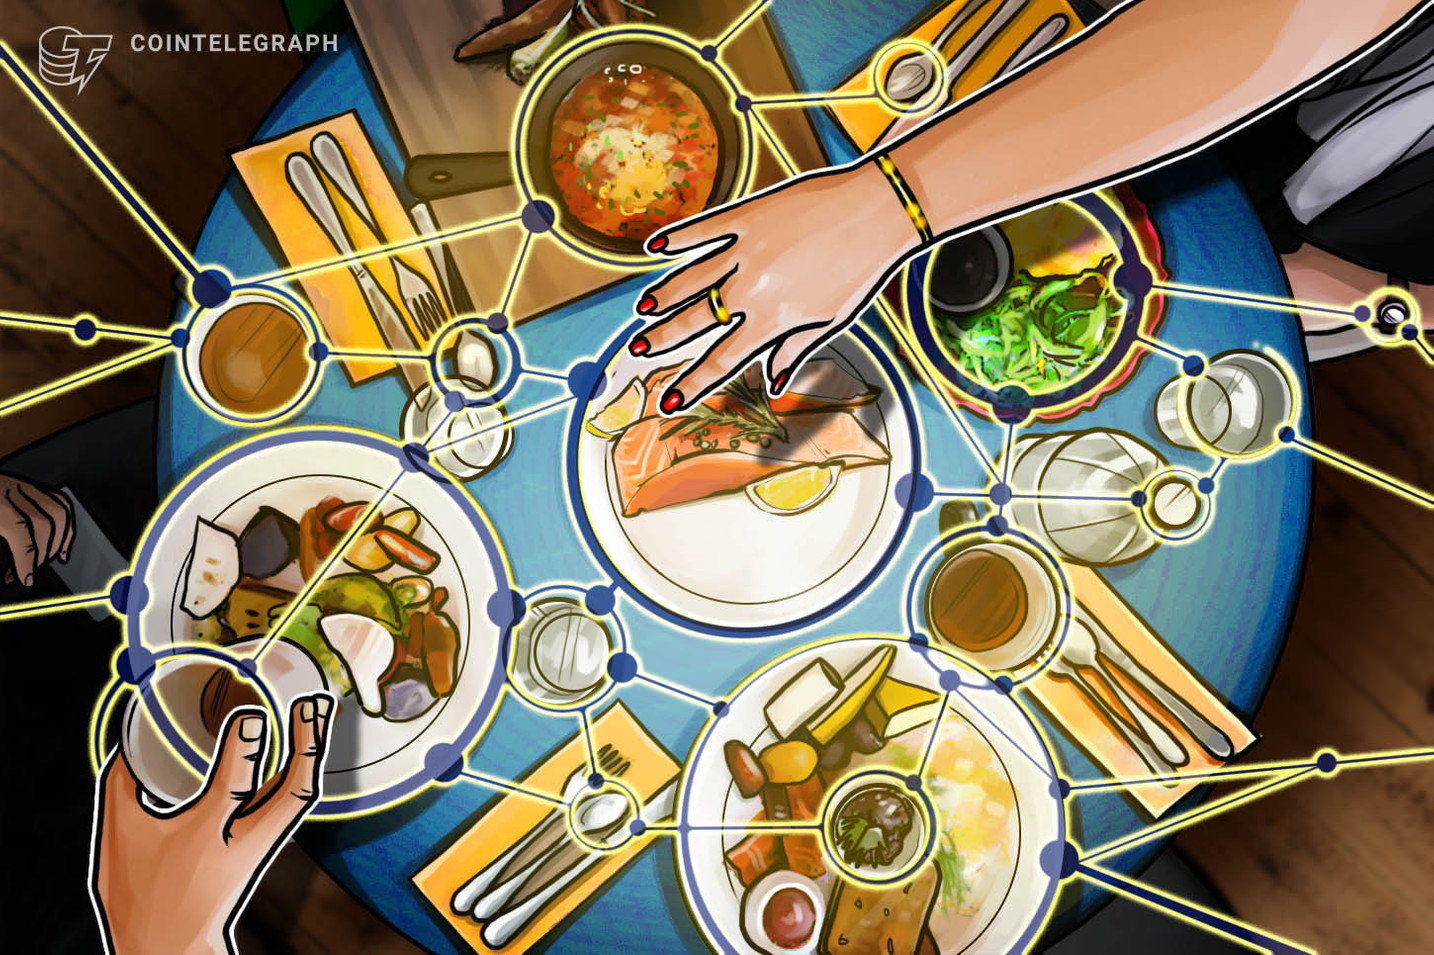 VeChain's Latest Blockchain Application Makes Food Safer